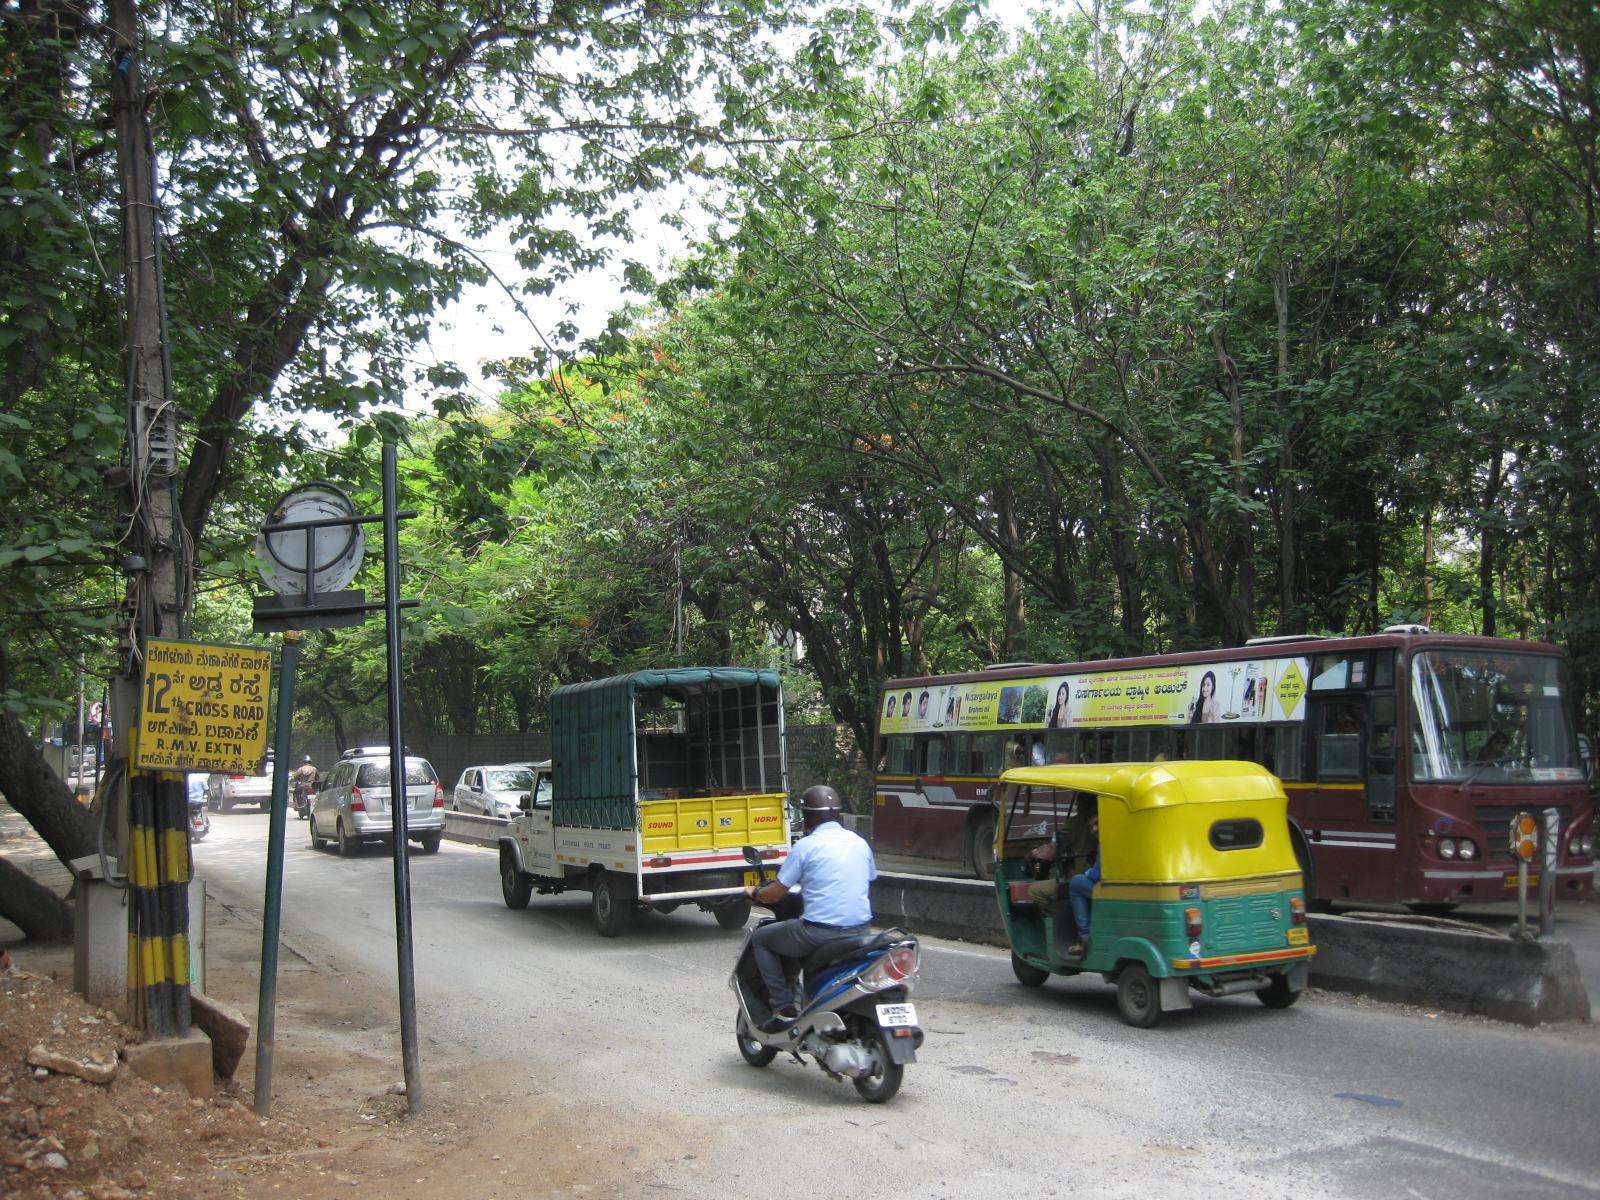 A Street in Bangalore